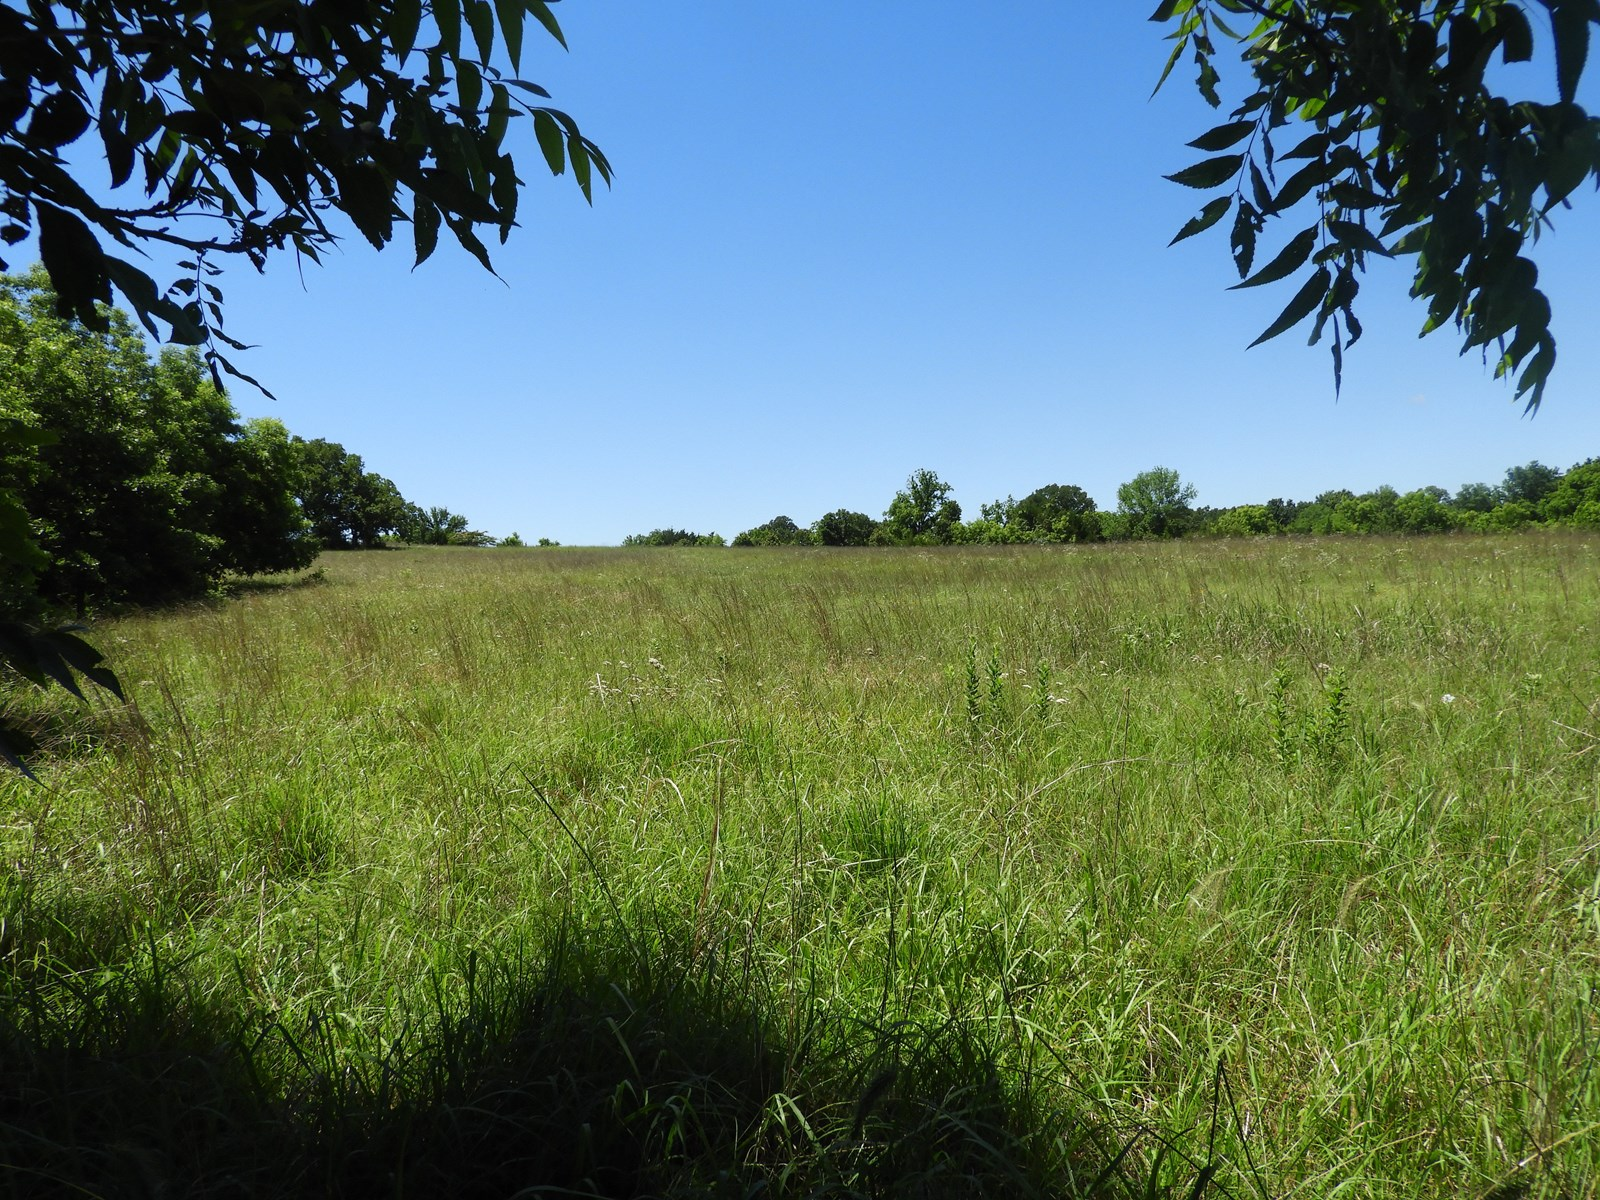 Real Estate Auction, Grassland / Ranch in Chandler - Central Oklahoma